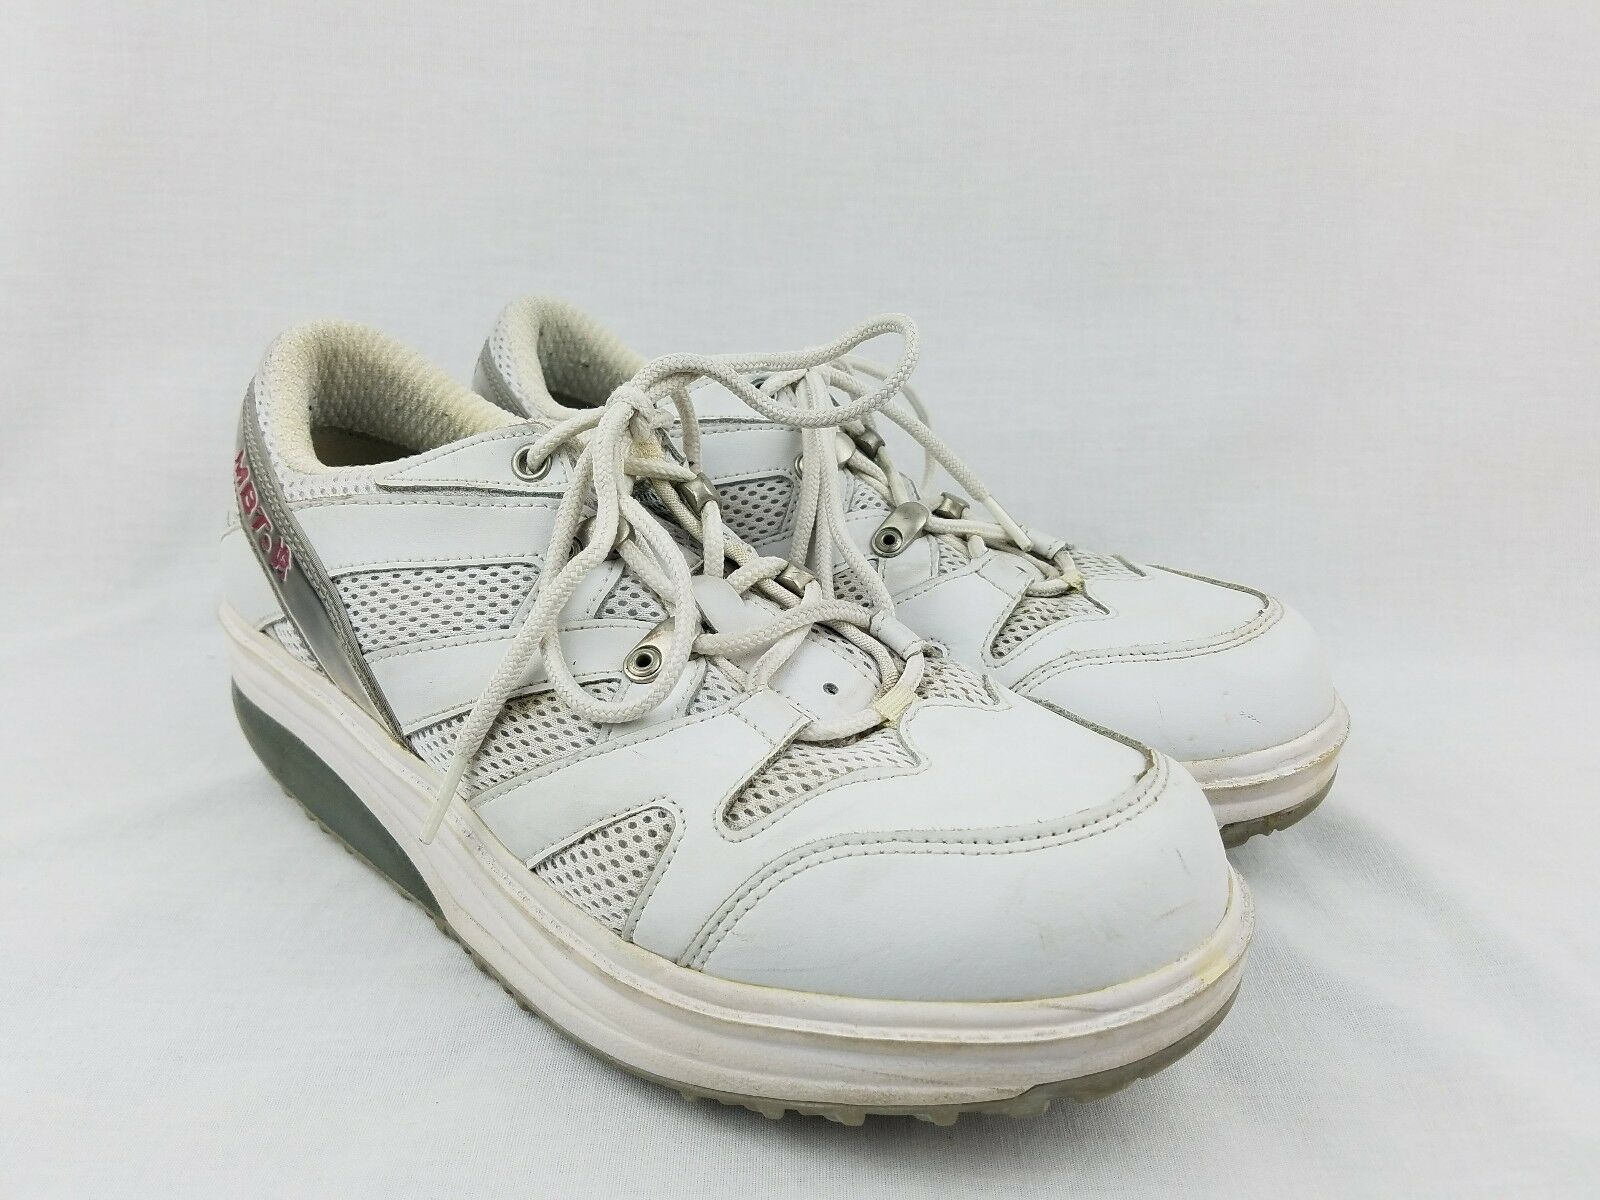 MBT Toning Walking Sport shoes Unisex SIZE WOMENS 9 MENS 7 Leather Mesh White